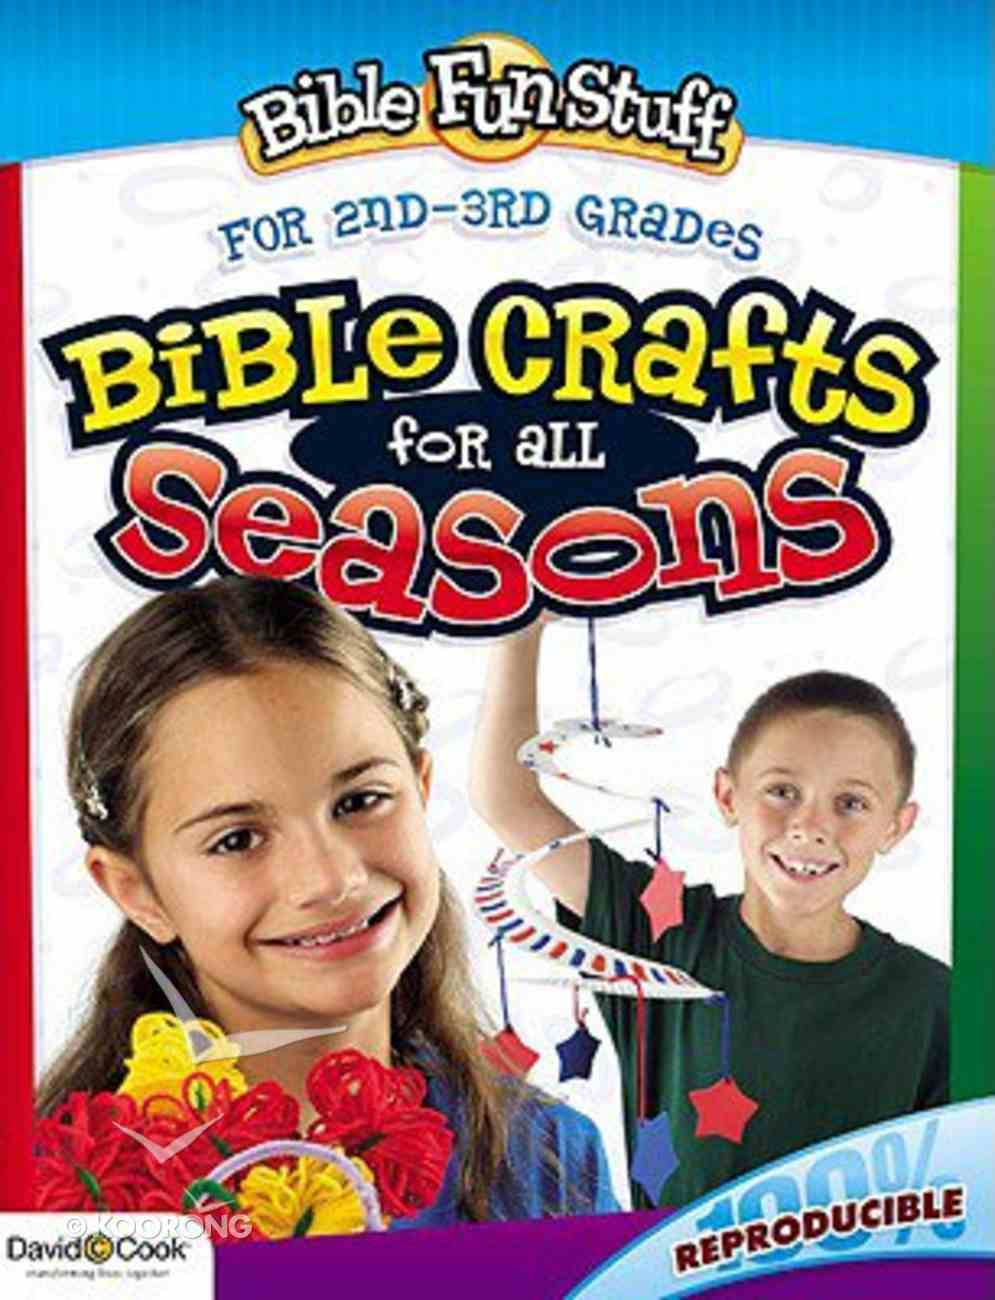 Bible Crafts For All Seasons (Reproducible) (Primary 2/3 Grade) (Bible Fun Stuff Series) Paperback